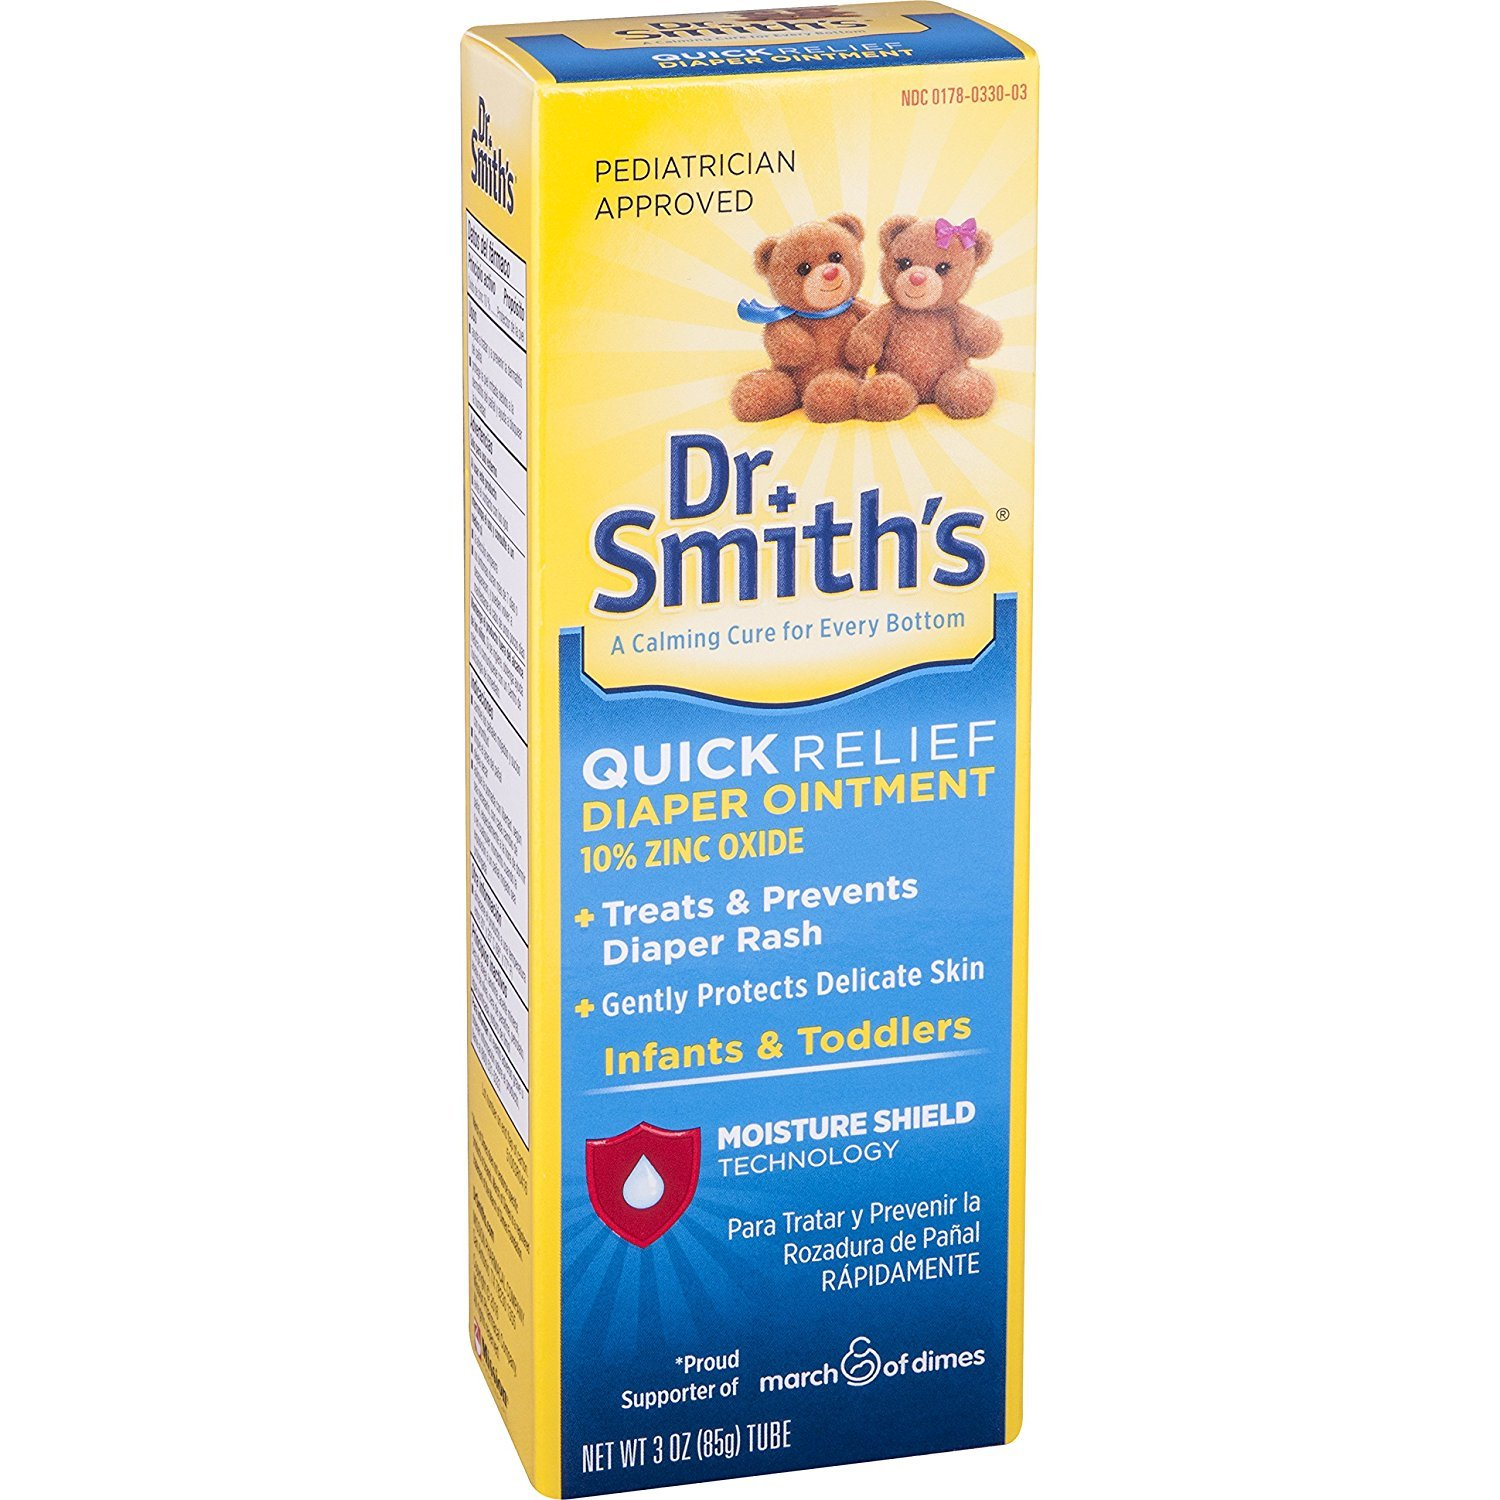 Dr. Smith's Premium Blend Diaper Ointment tube 3 oz (Pack of 3) by Dr. Smith's